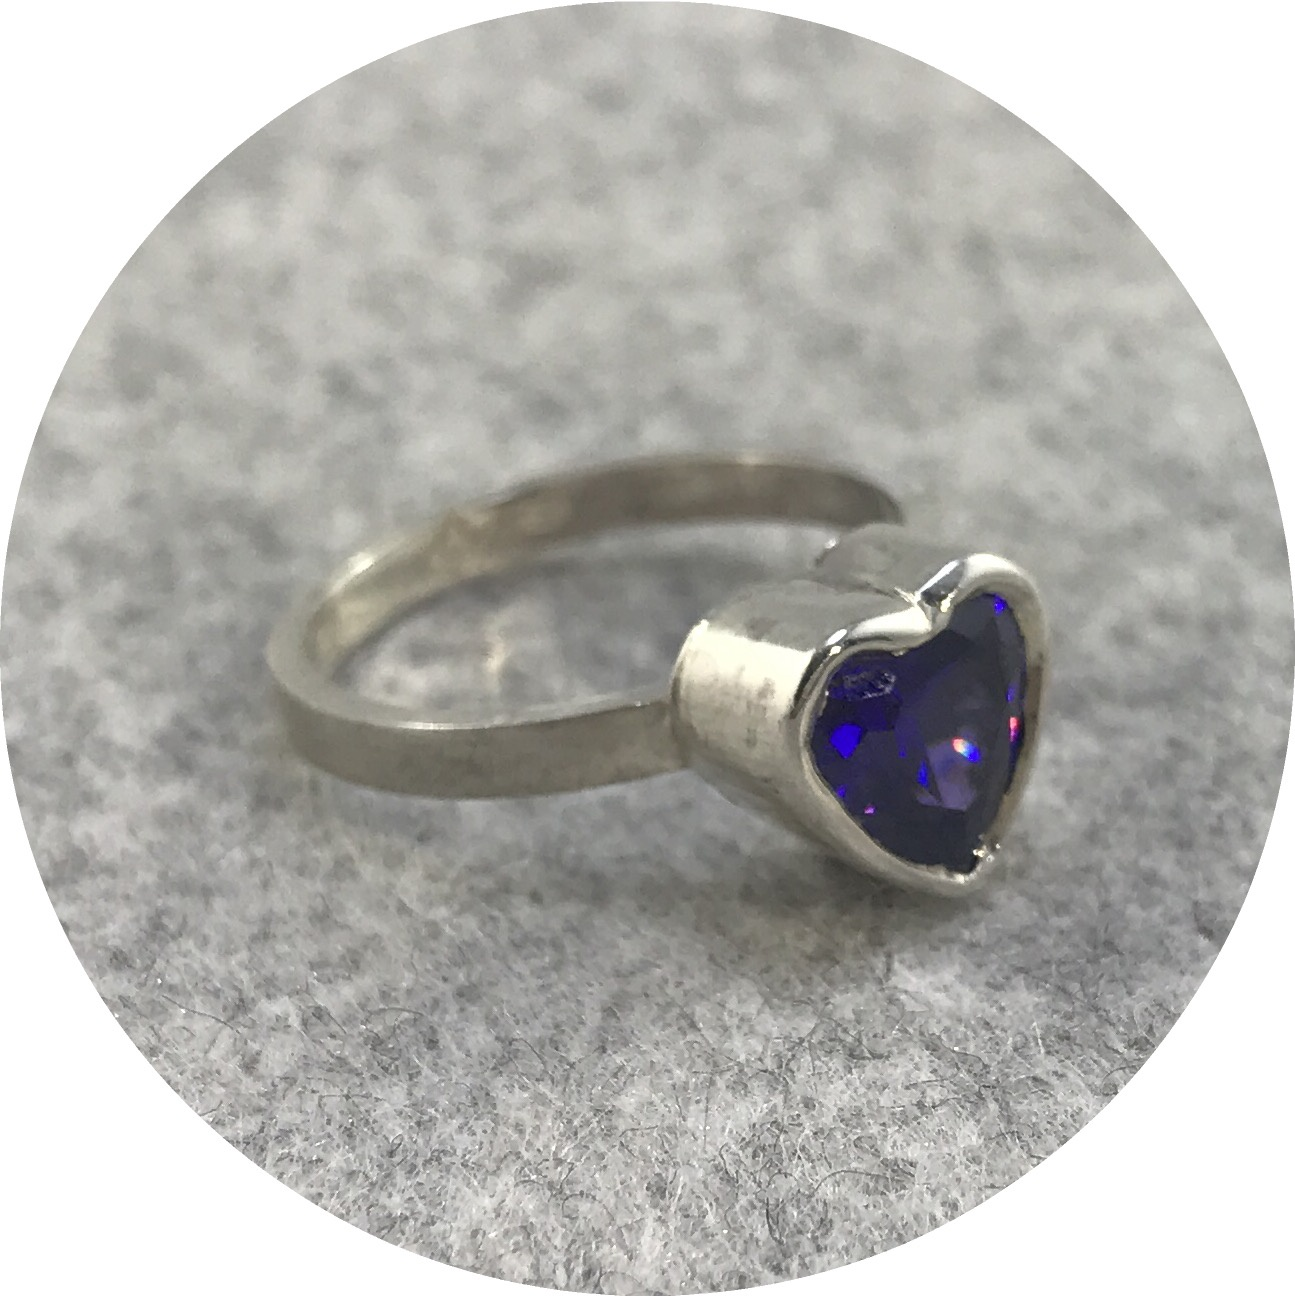 Anastasia Mannix - 'Empress' Ring 2 in Sterling Silver with a Heart Shaped Purple Cubic Zirconia